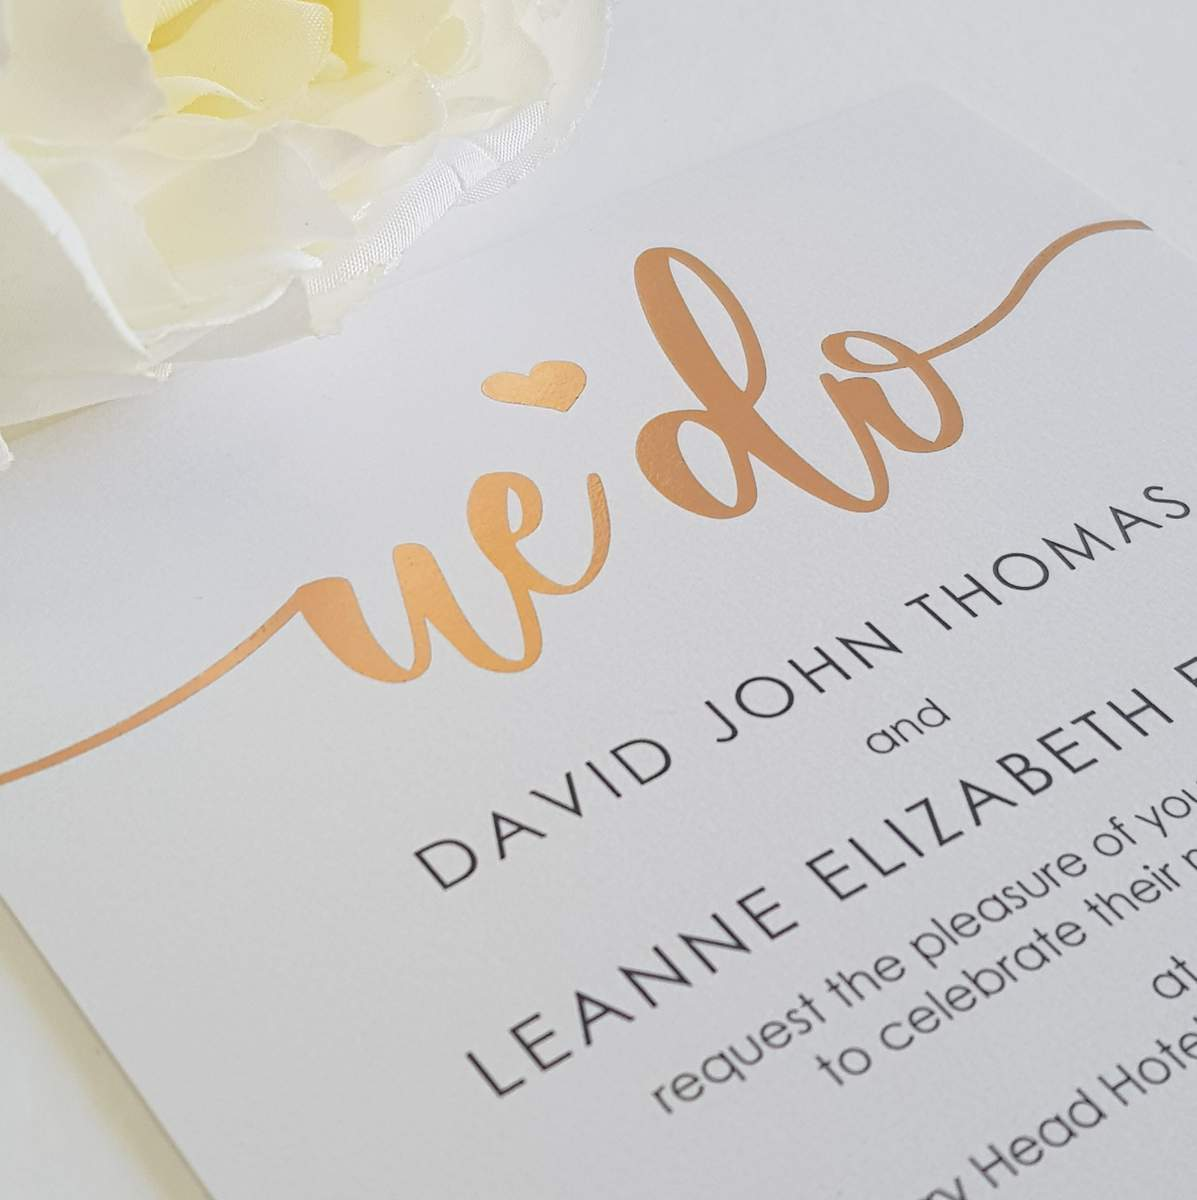 Modern printed wedding invitation black text on white card with rose gold foil accents